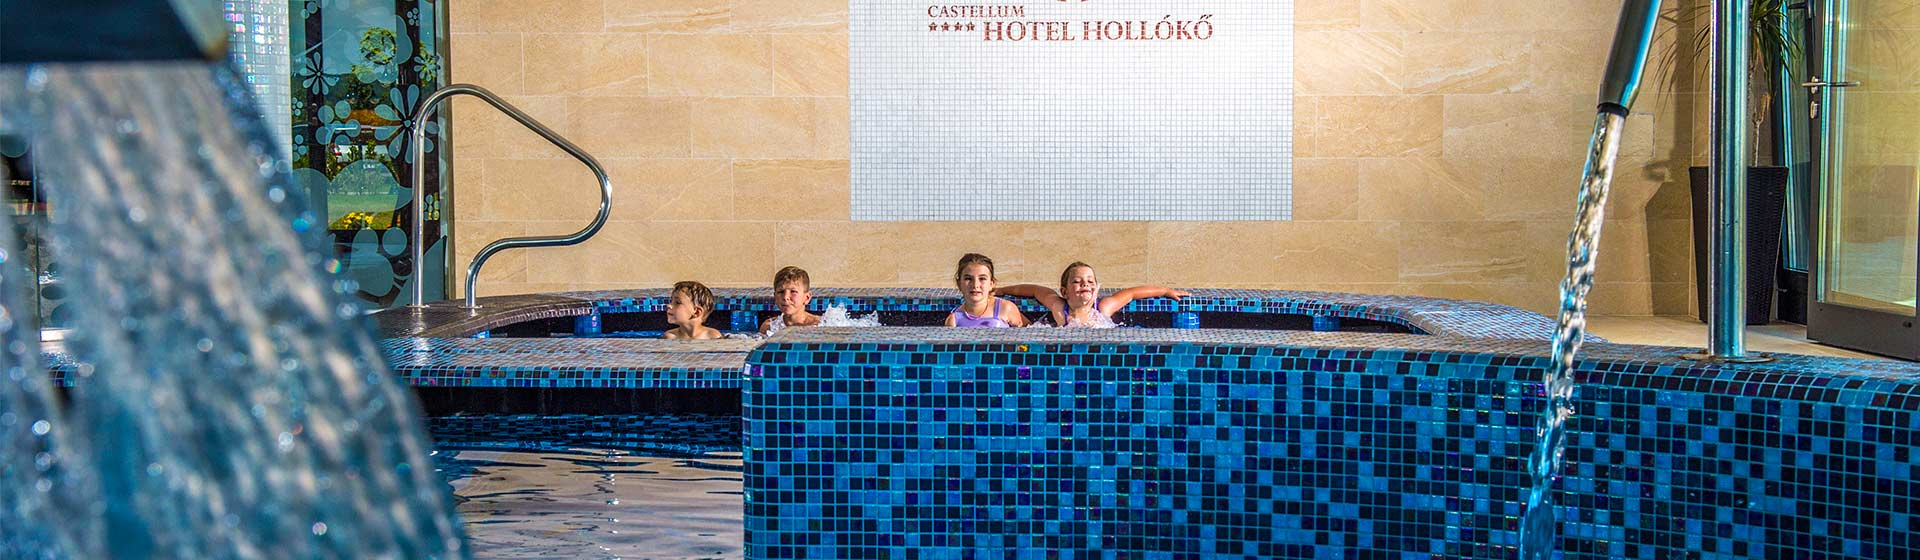 Early bird discount - Castellum Hotel Hollókő**** - Wellness szálloda